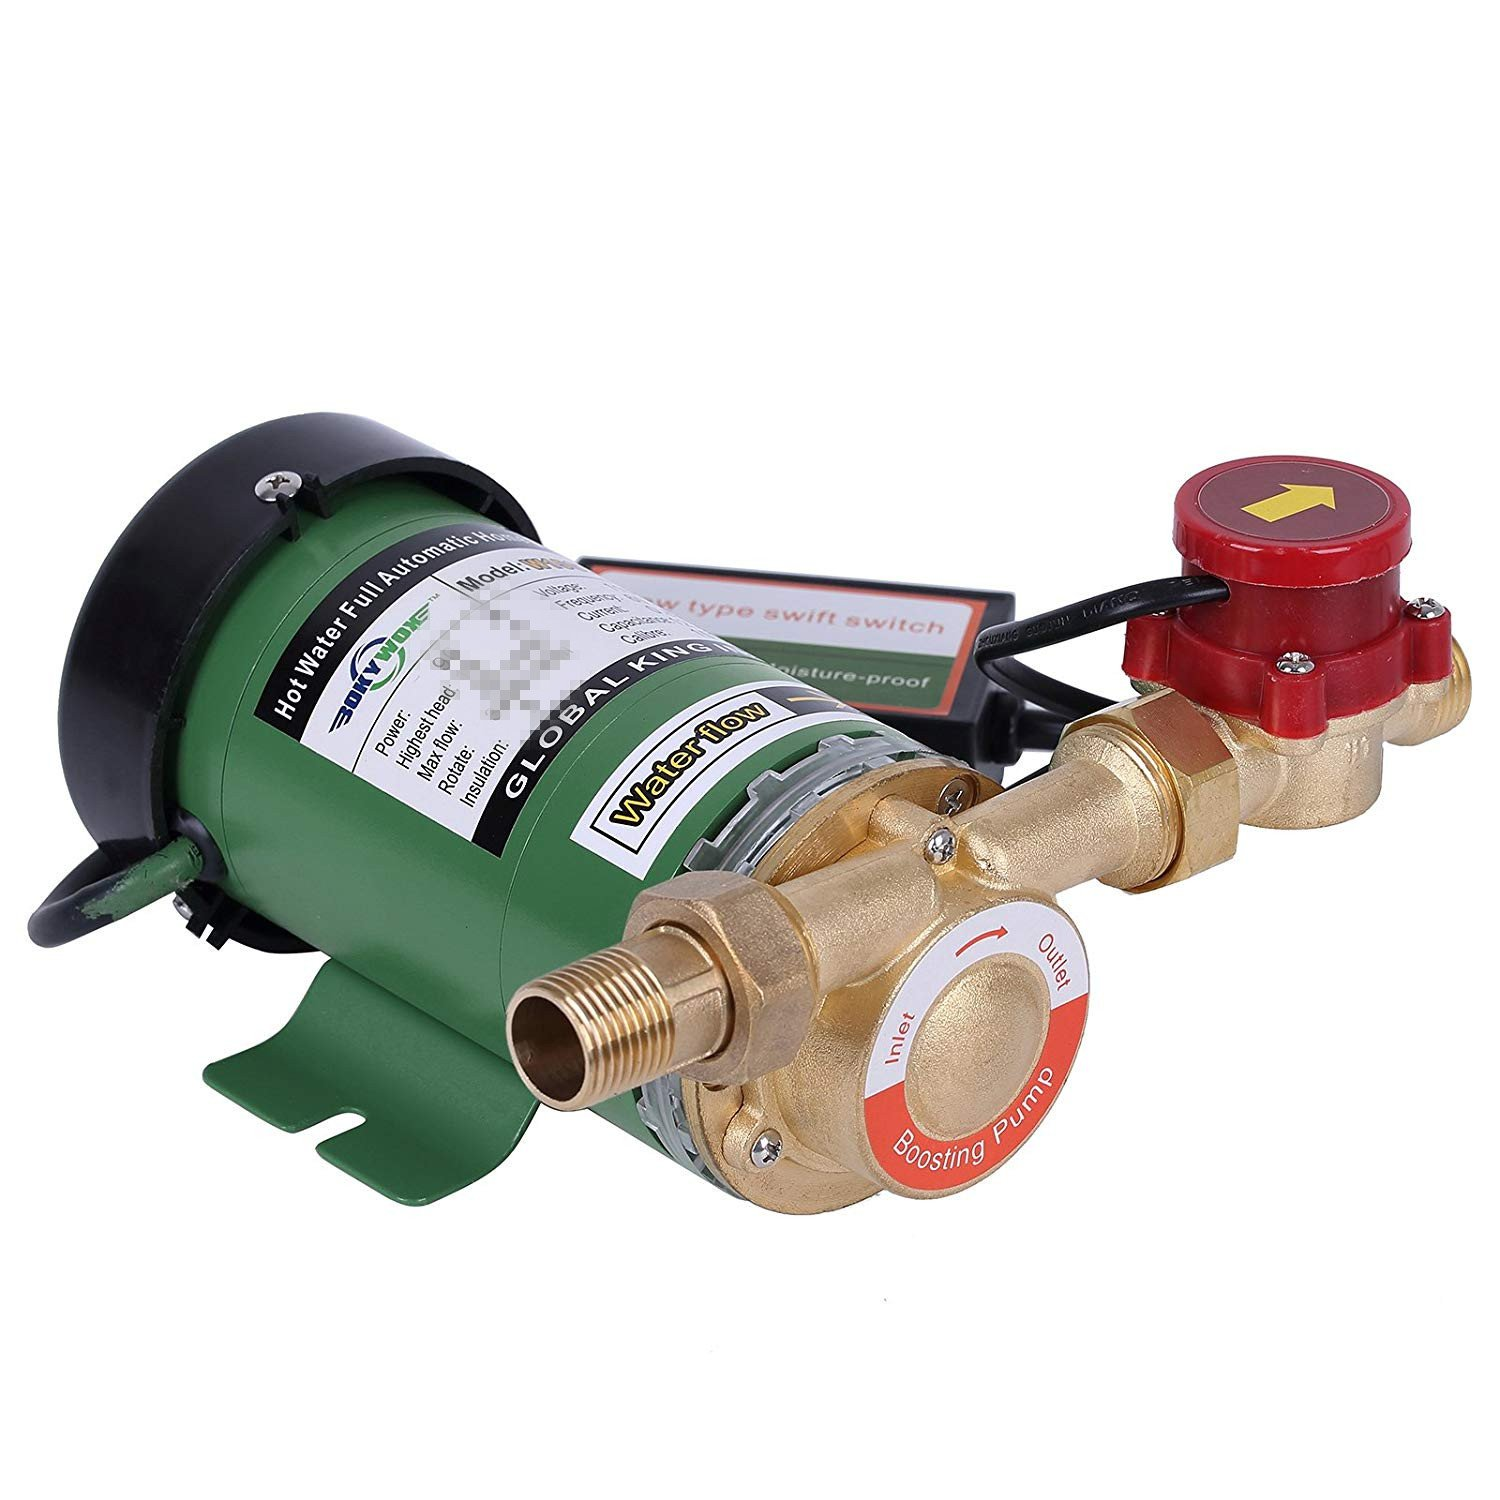 BOKYWOX 220V 90W Water Pressure Booster Pump Booster Water Pump for Home Shower/Washing Machine. (W15GR-10) BOKYWOX®